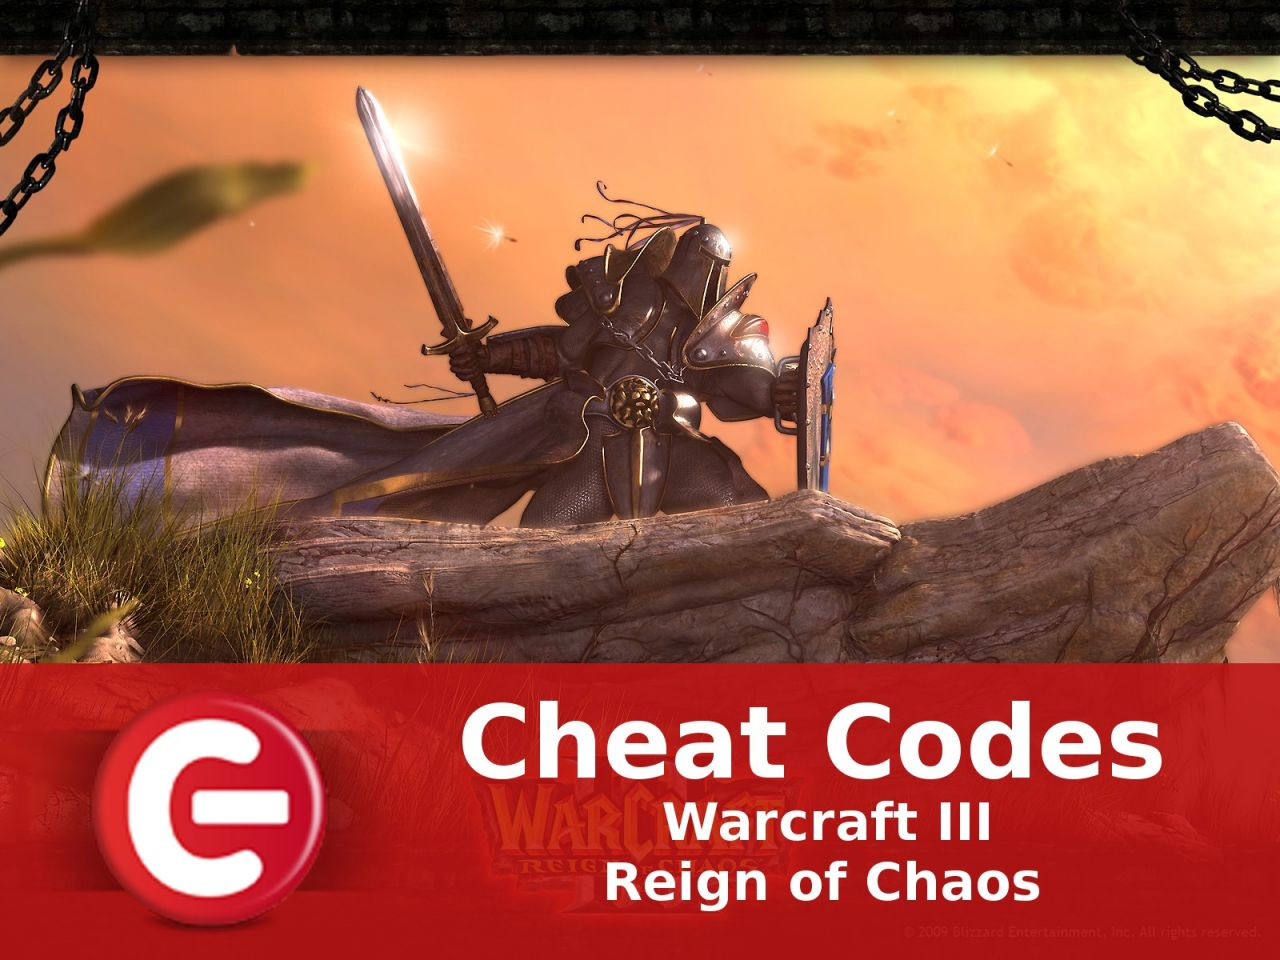 Warcraft III Reign of Chaos : Soluce Cheat Codes